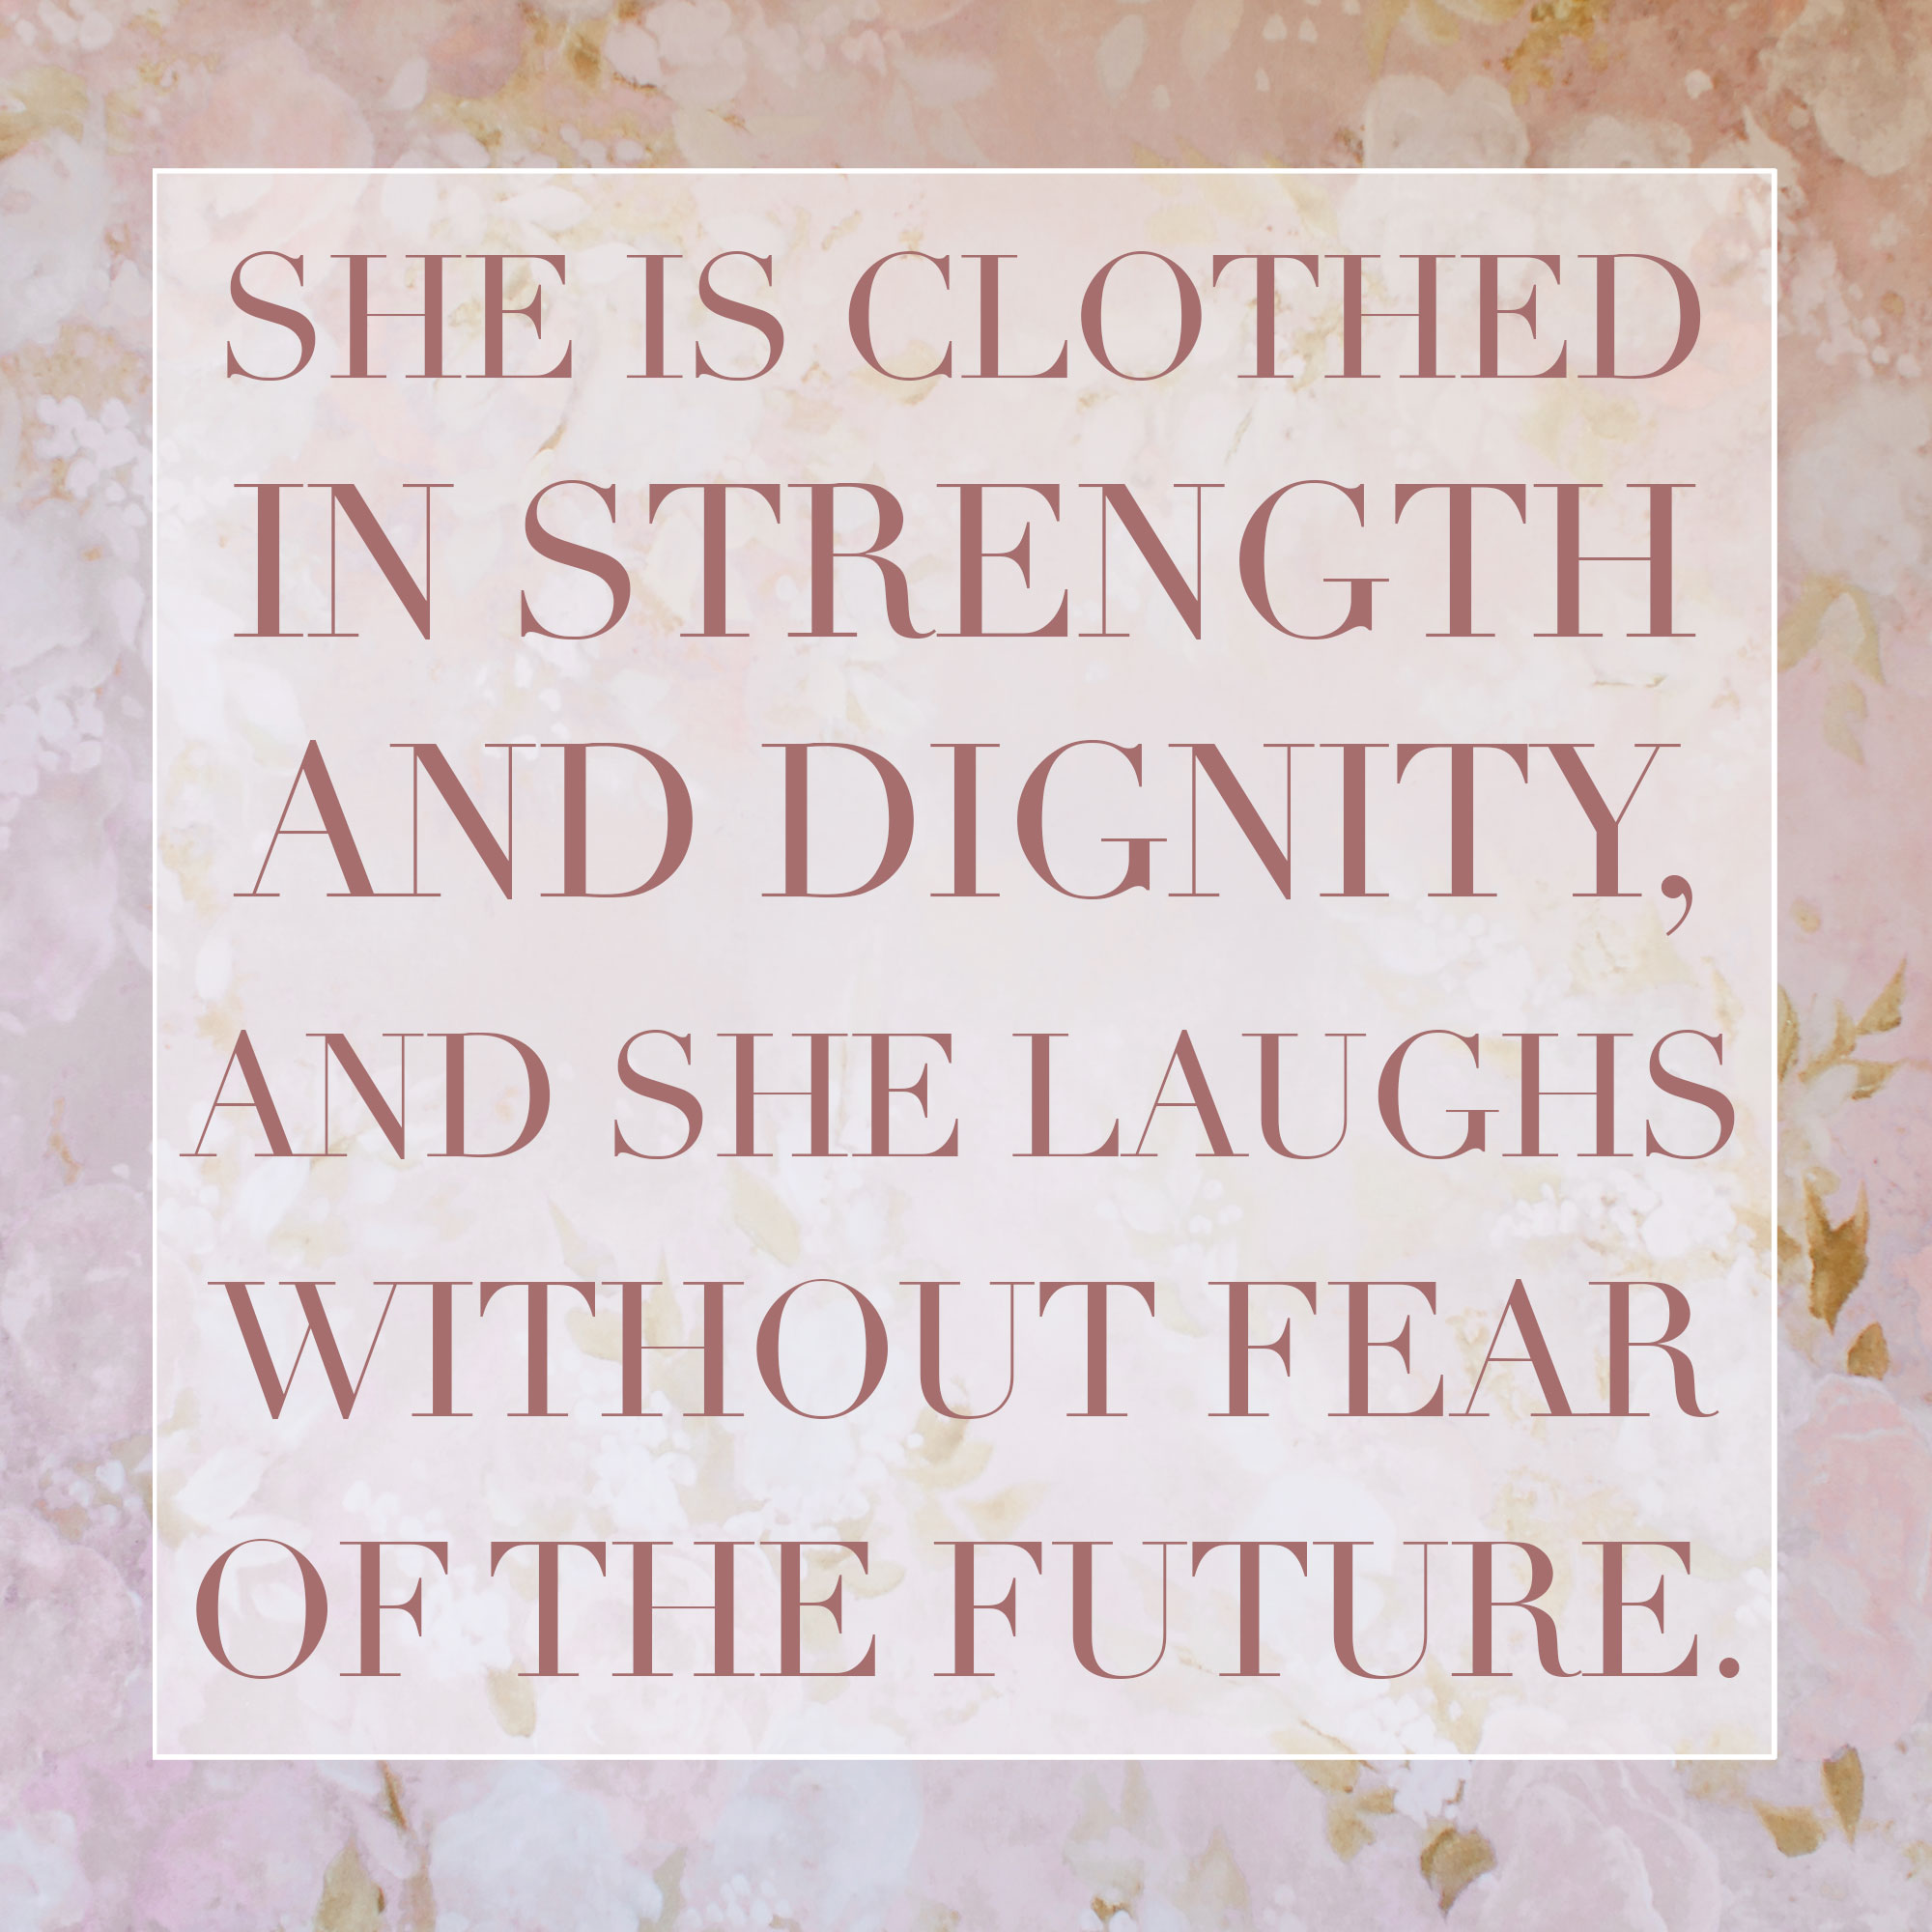 Clothed_in_Strength_quote_0345.jpg